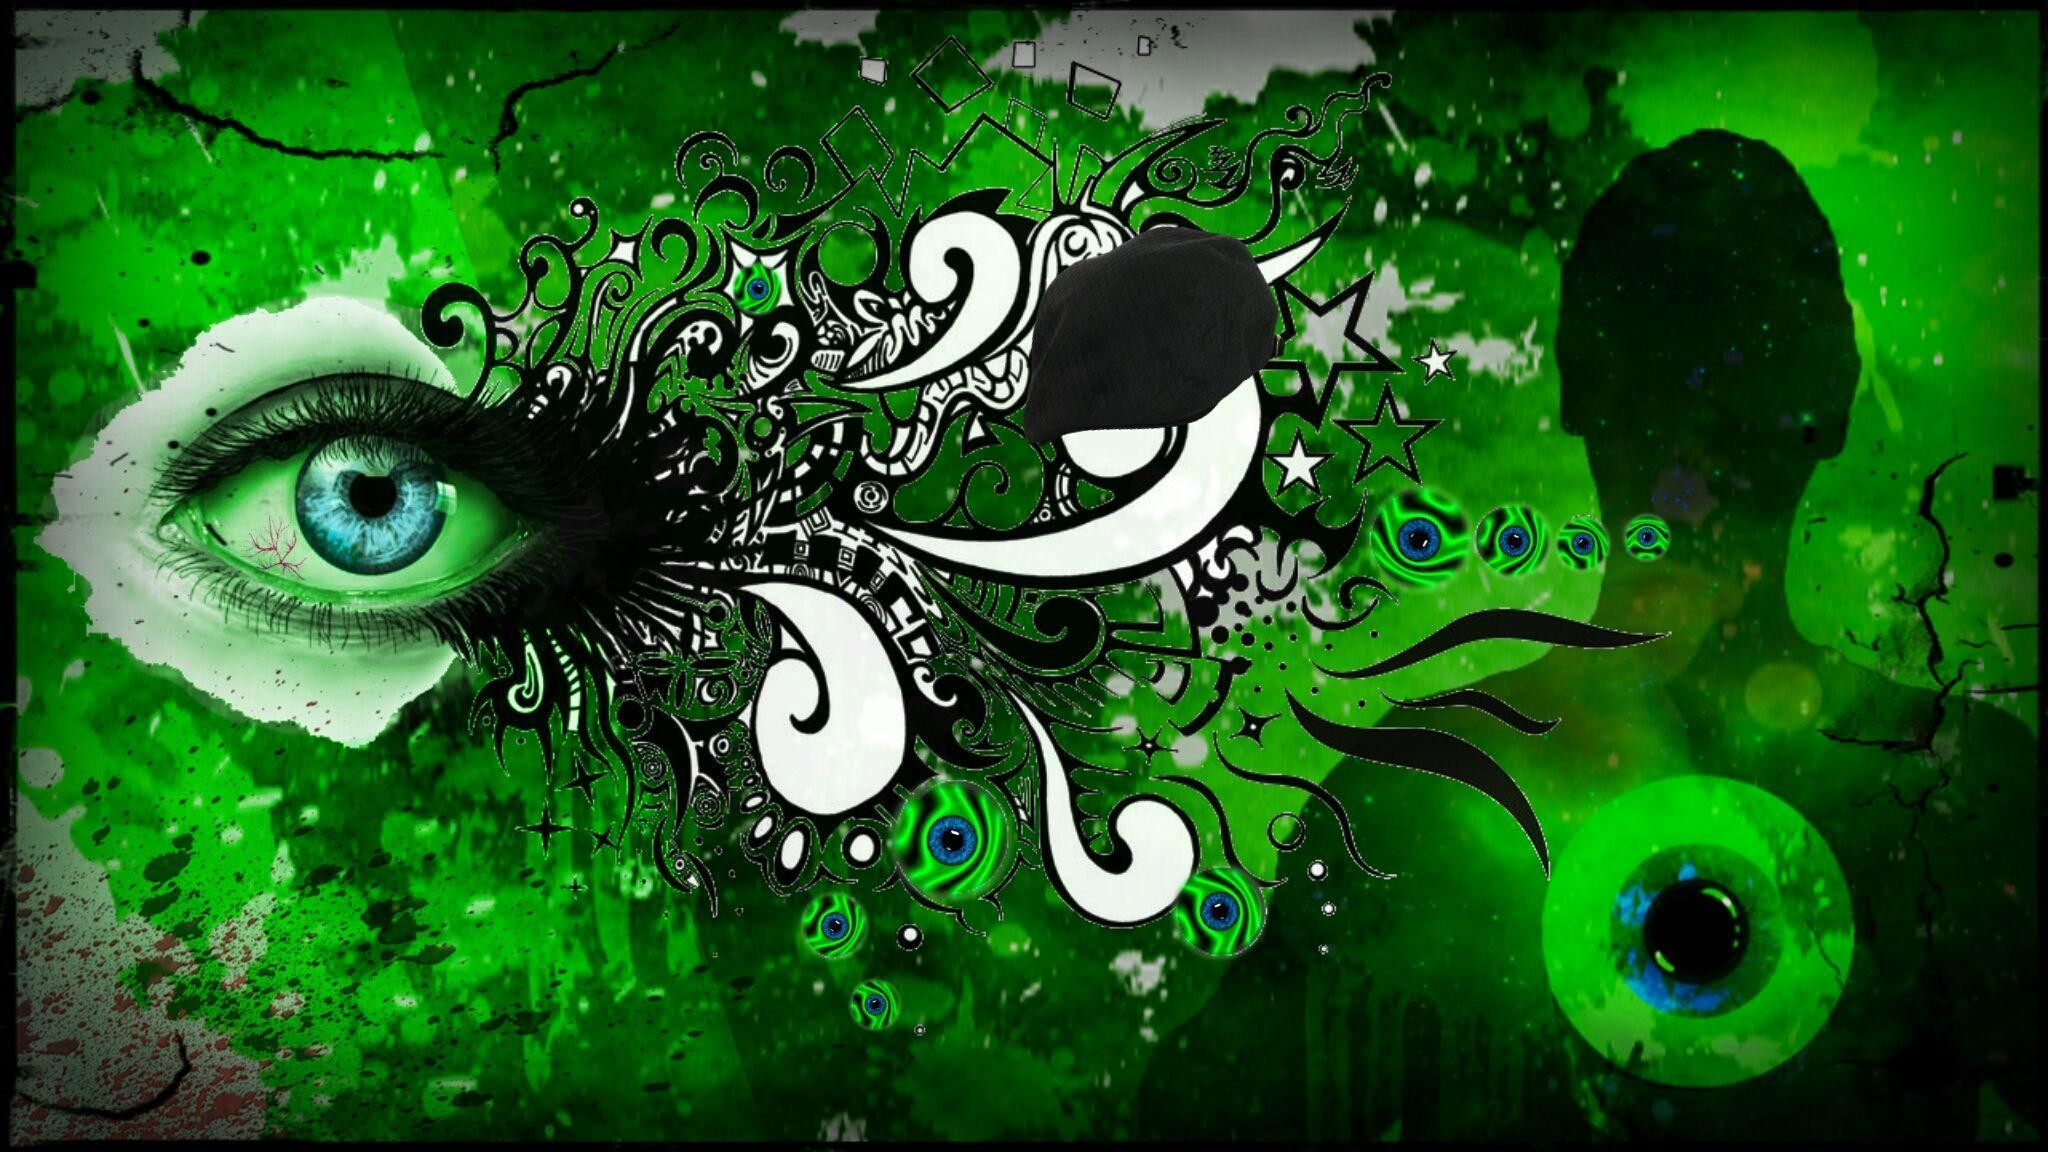 Jacksepticeye Wallpapers 72 images 2048x1152